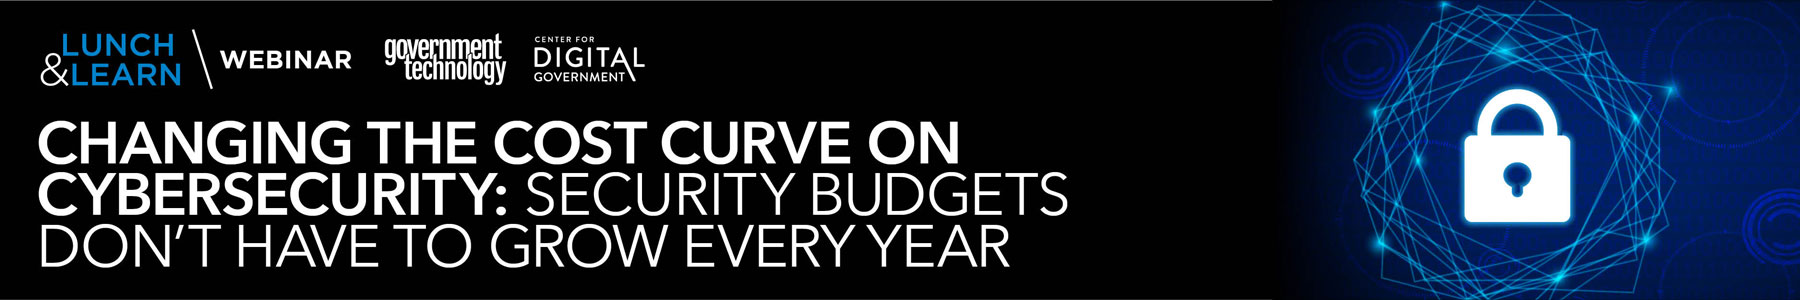 Changing the Cost Curve on Cybersecurity: Security Budgets Don't Have to Grow Every Year